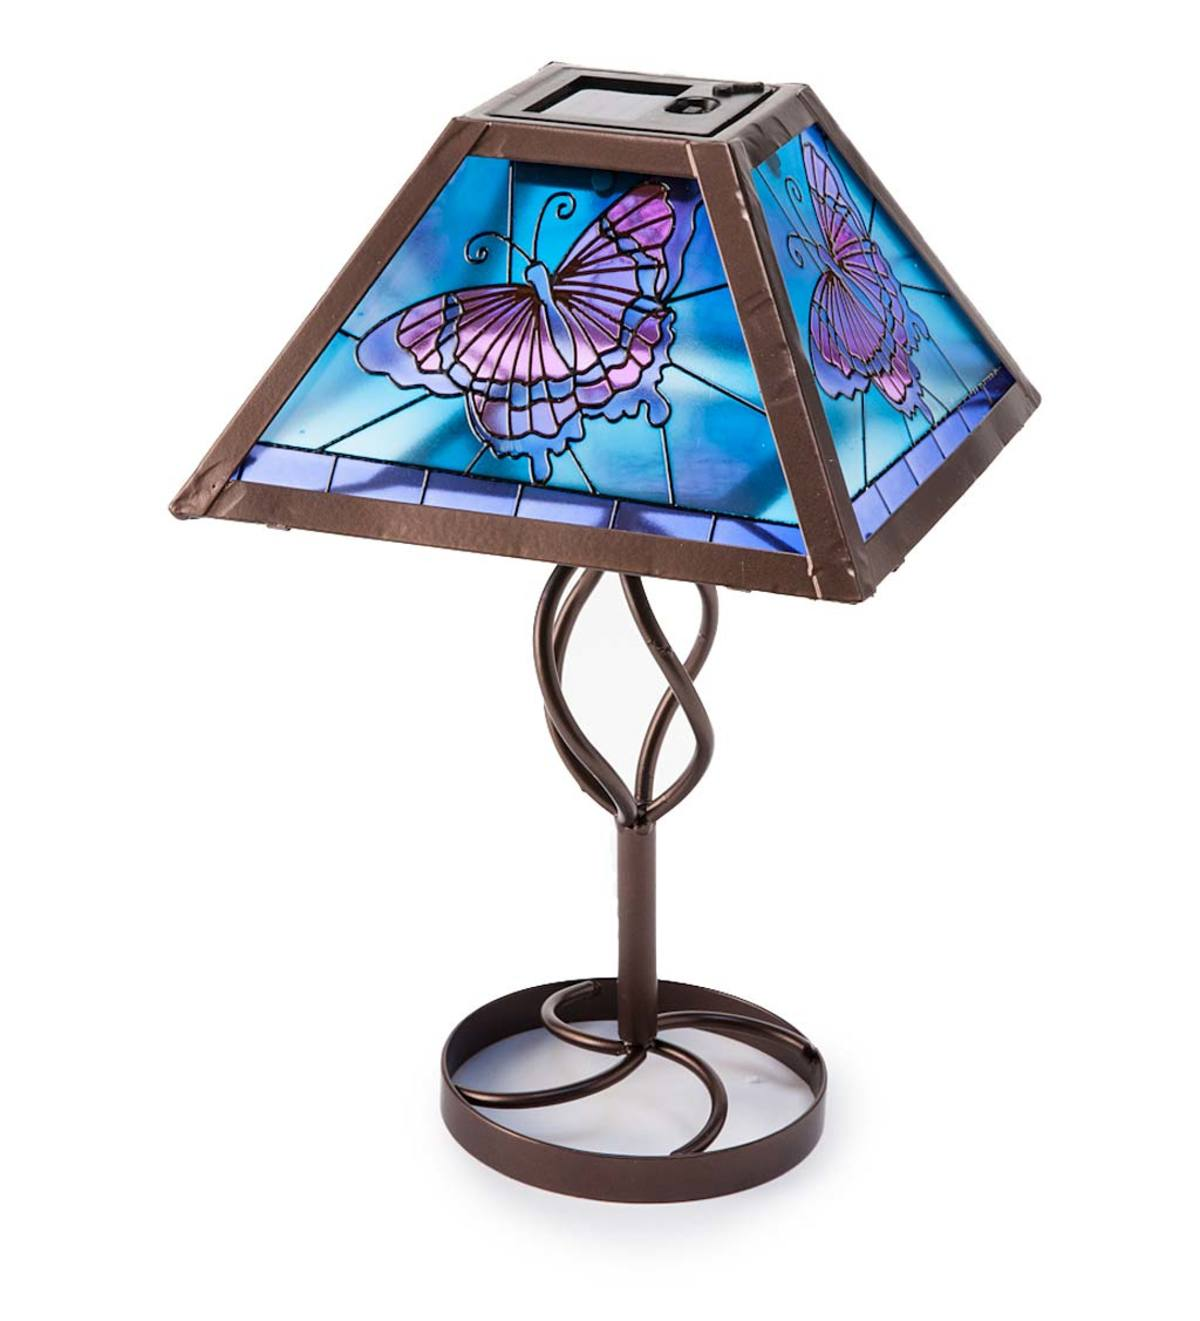 tiffany style stained glass solar outdoor table accent lamp wind butterfly jeromes furniture monarch hall console designer lamps teak dining set inch entrance way tables long with